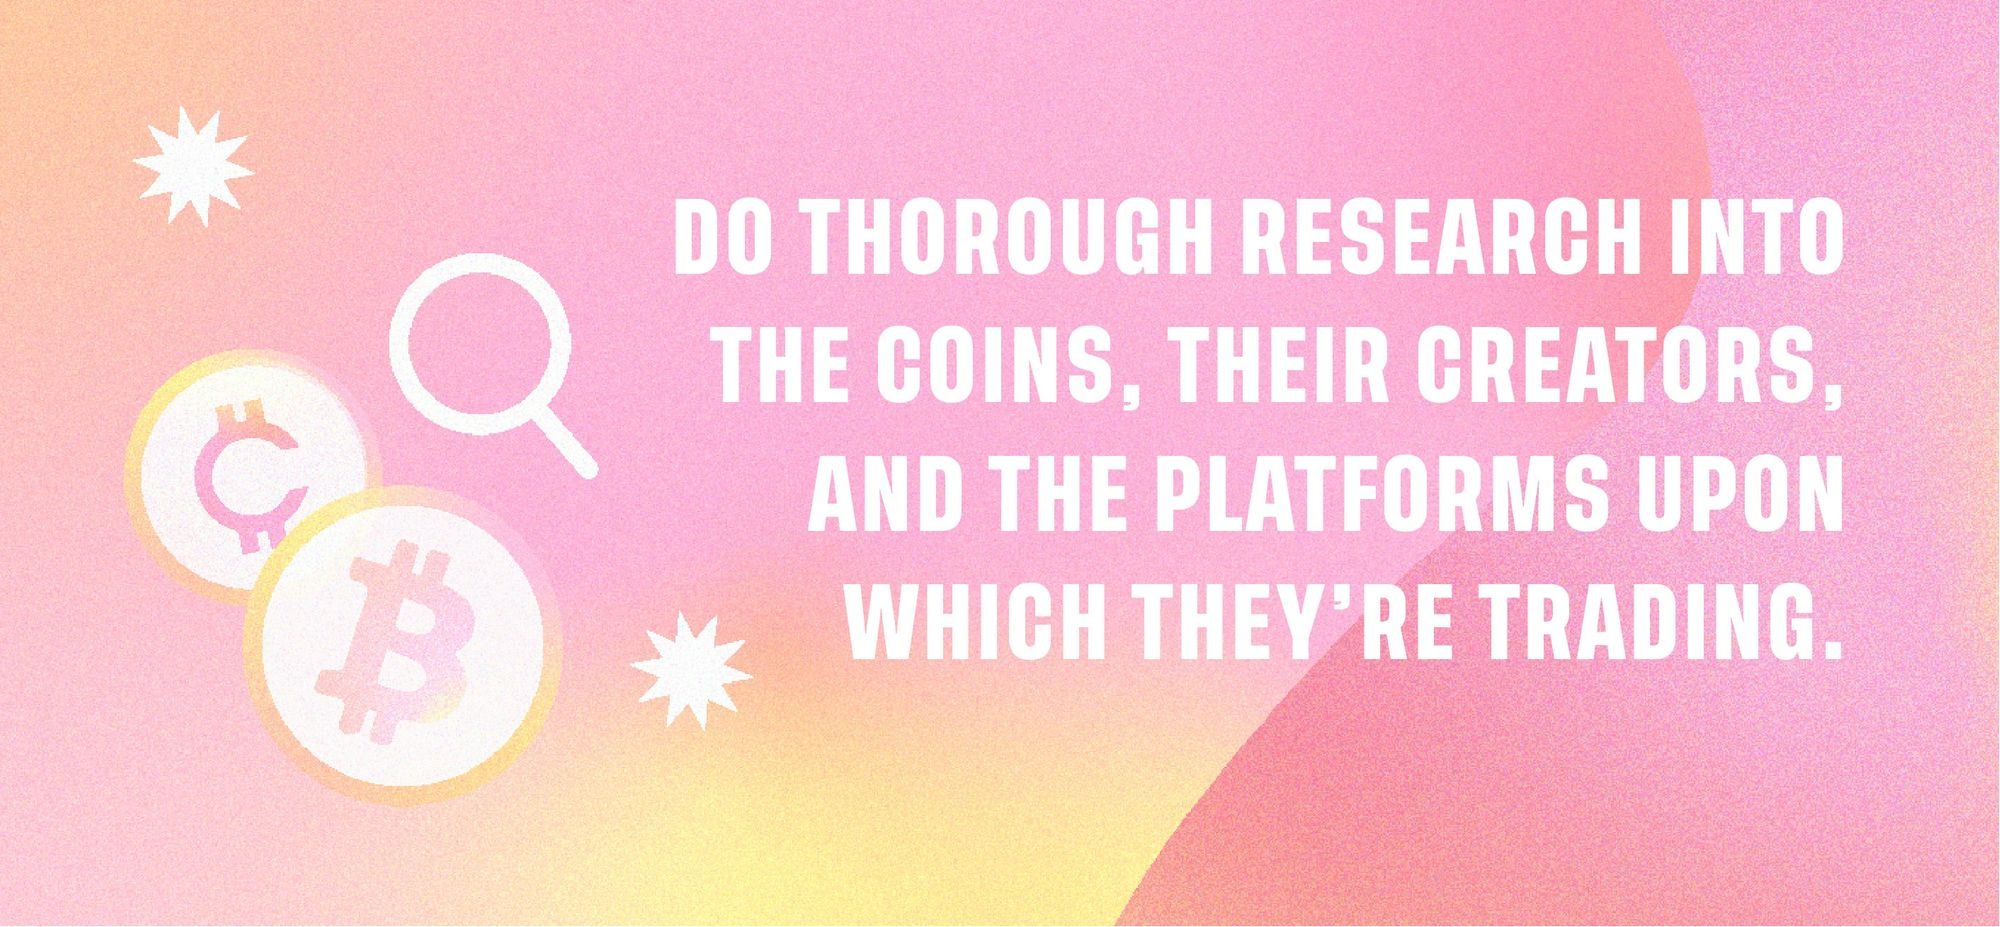 Do thorough research into the coins, their creators and the platforms upon which they're trading